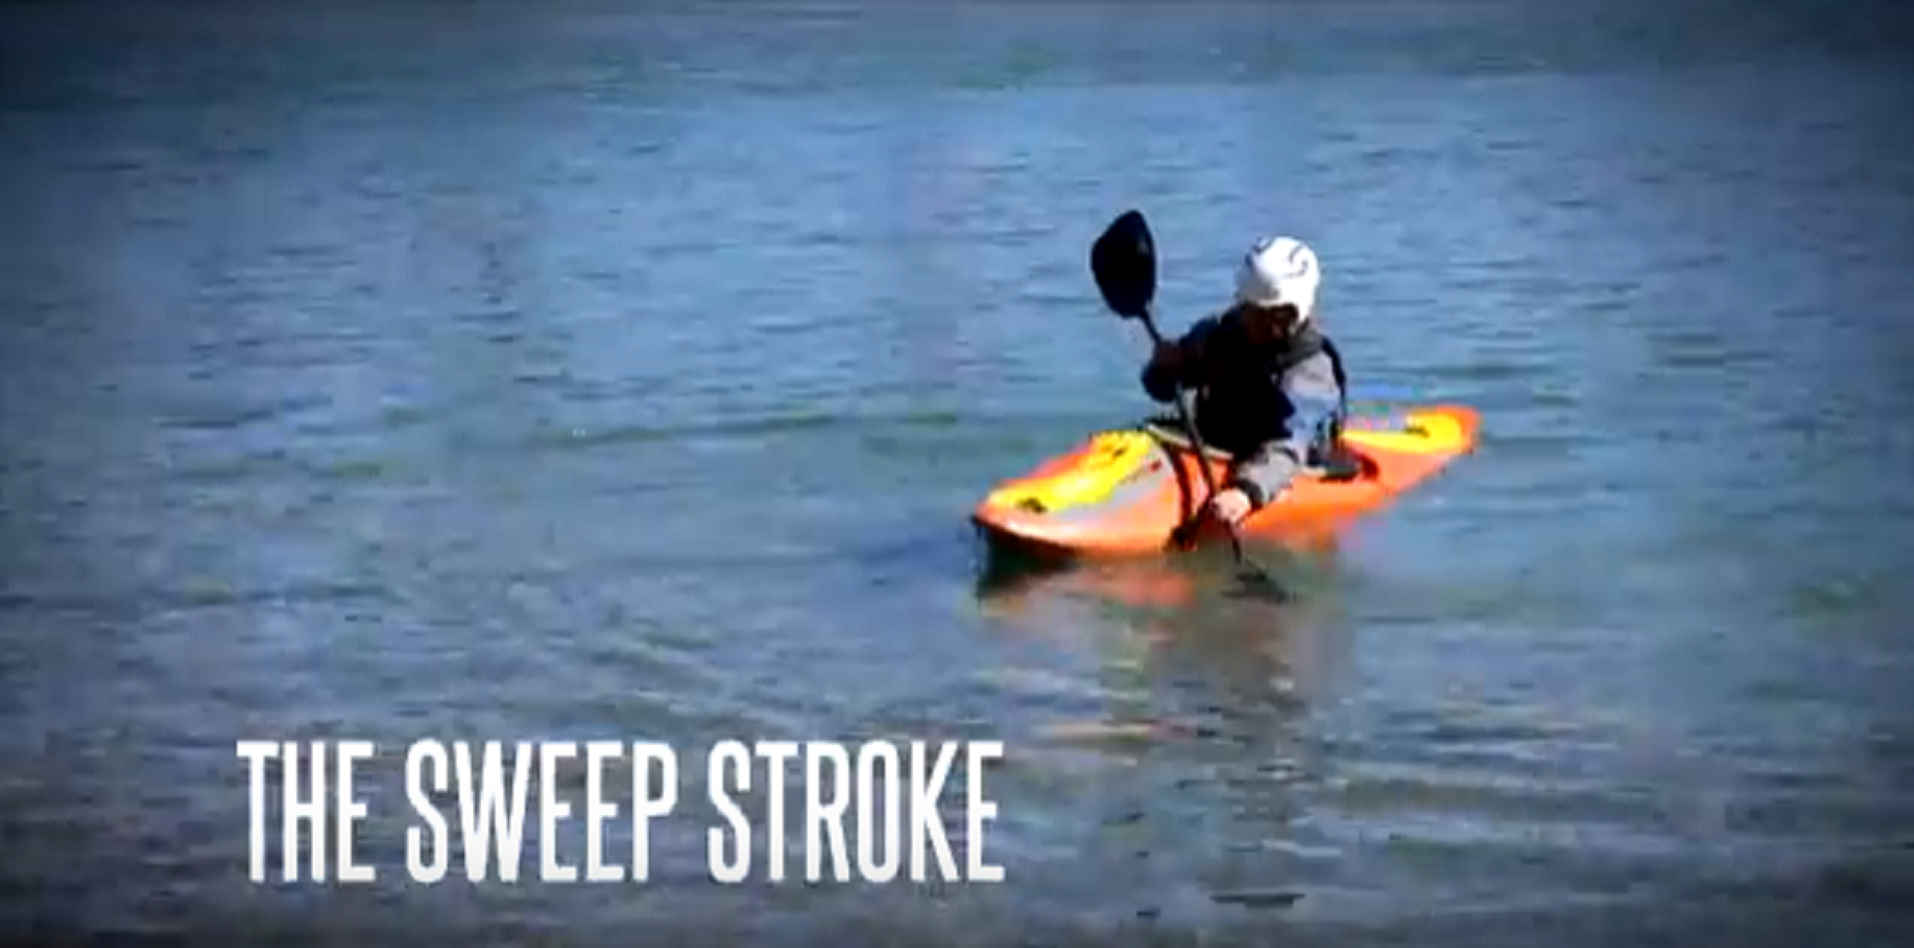 The Sweep Stroke - Beginner Kayak Instructional Video